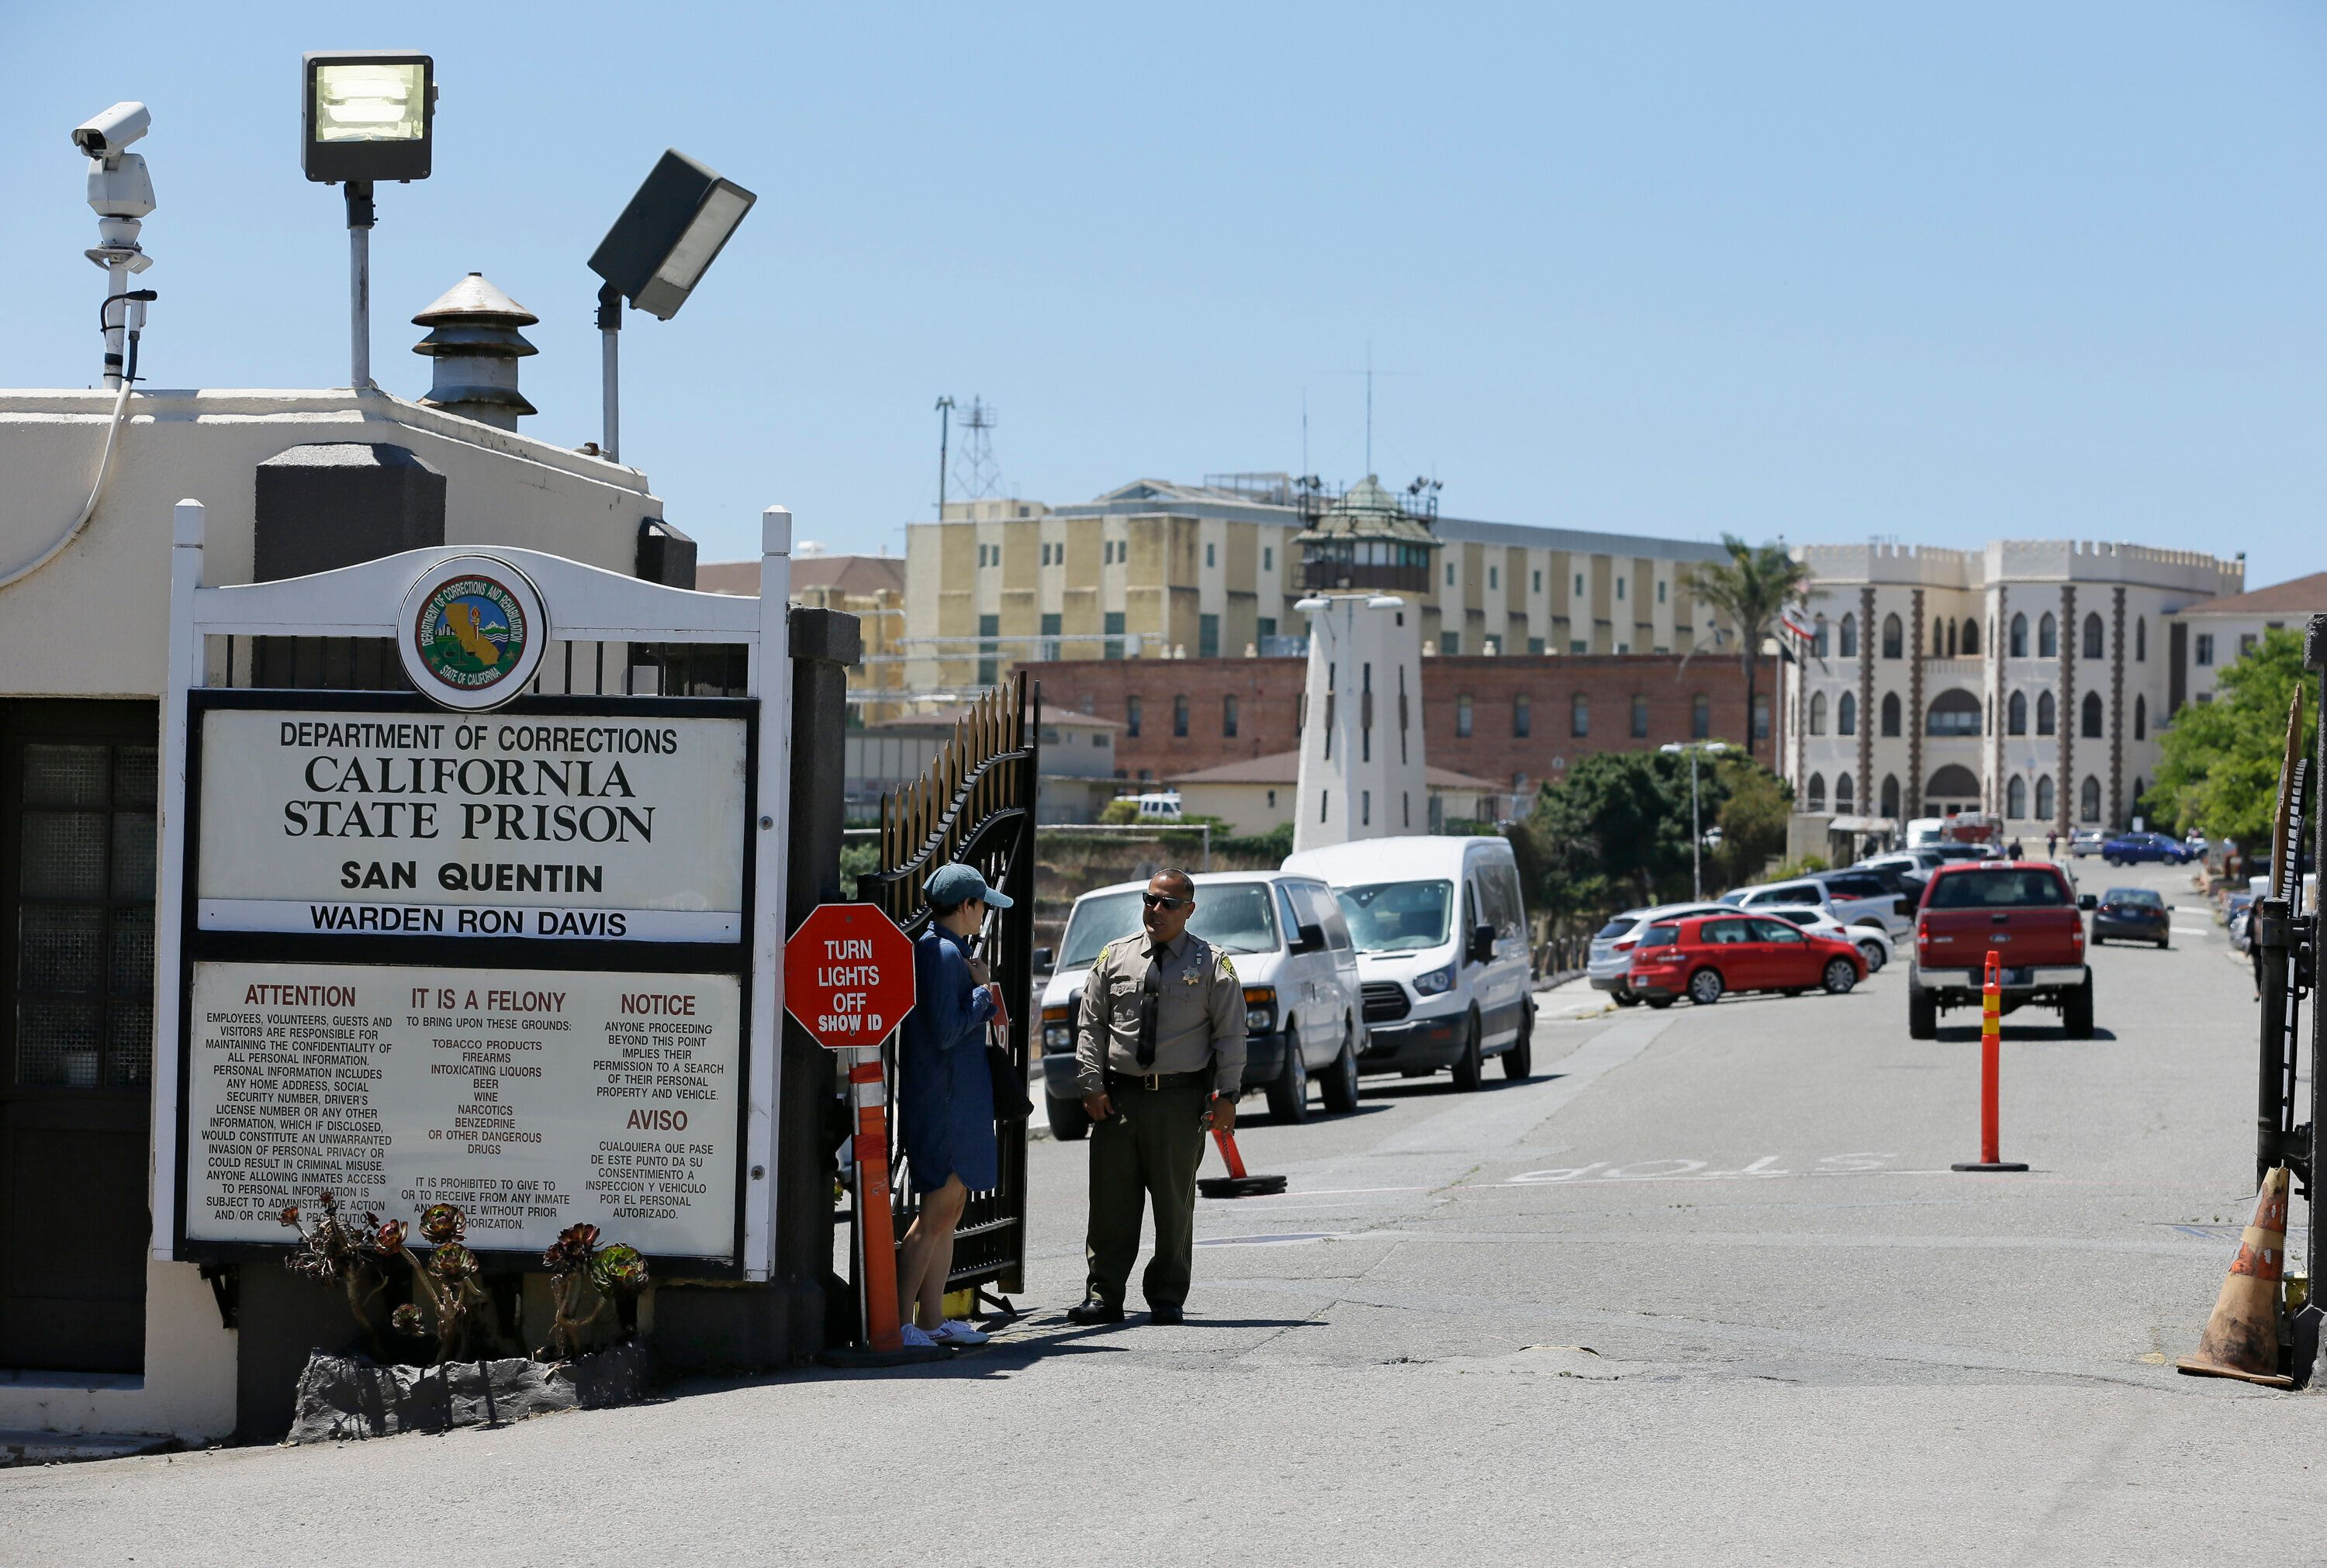 The main entryway leading into San Quentin State Prison in San Quentin, California, is seen. More than 35,000 California